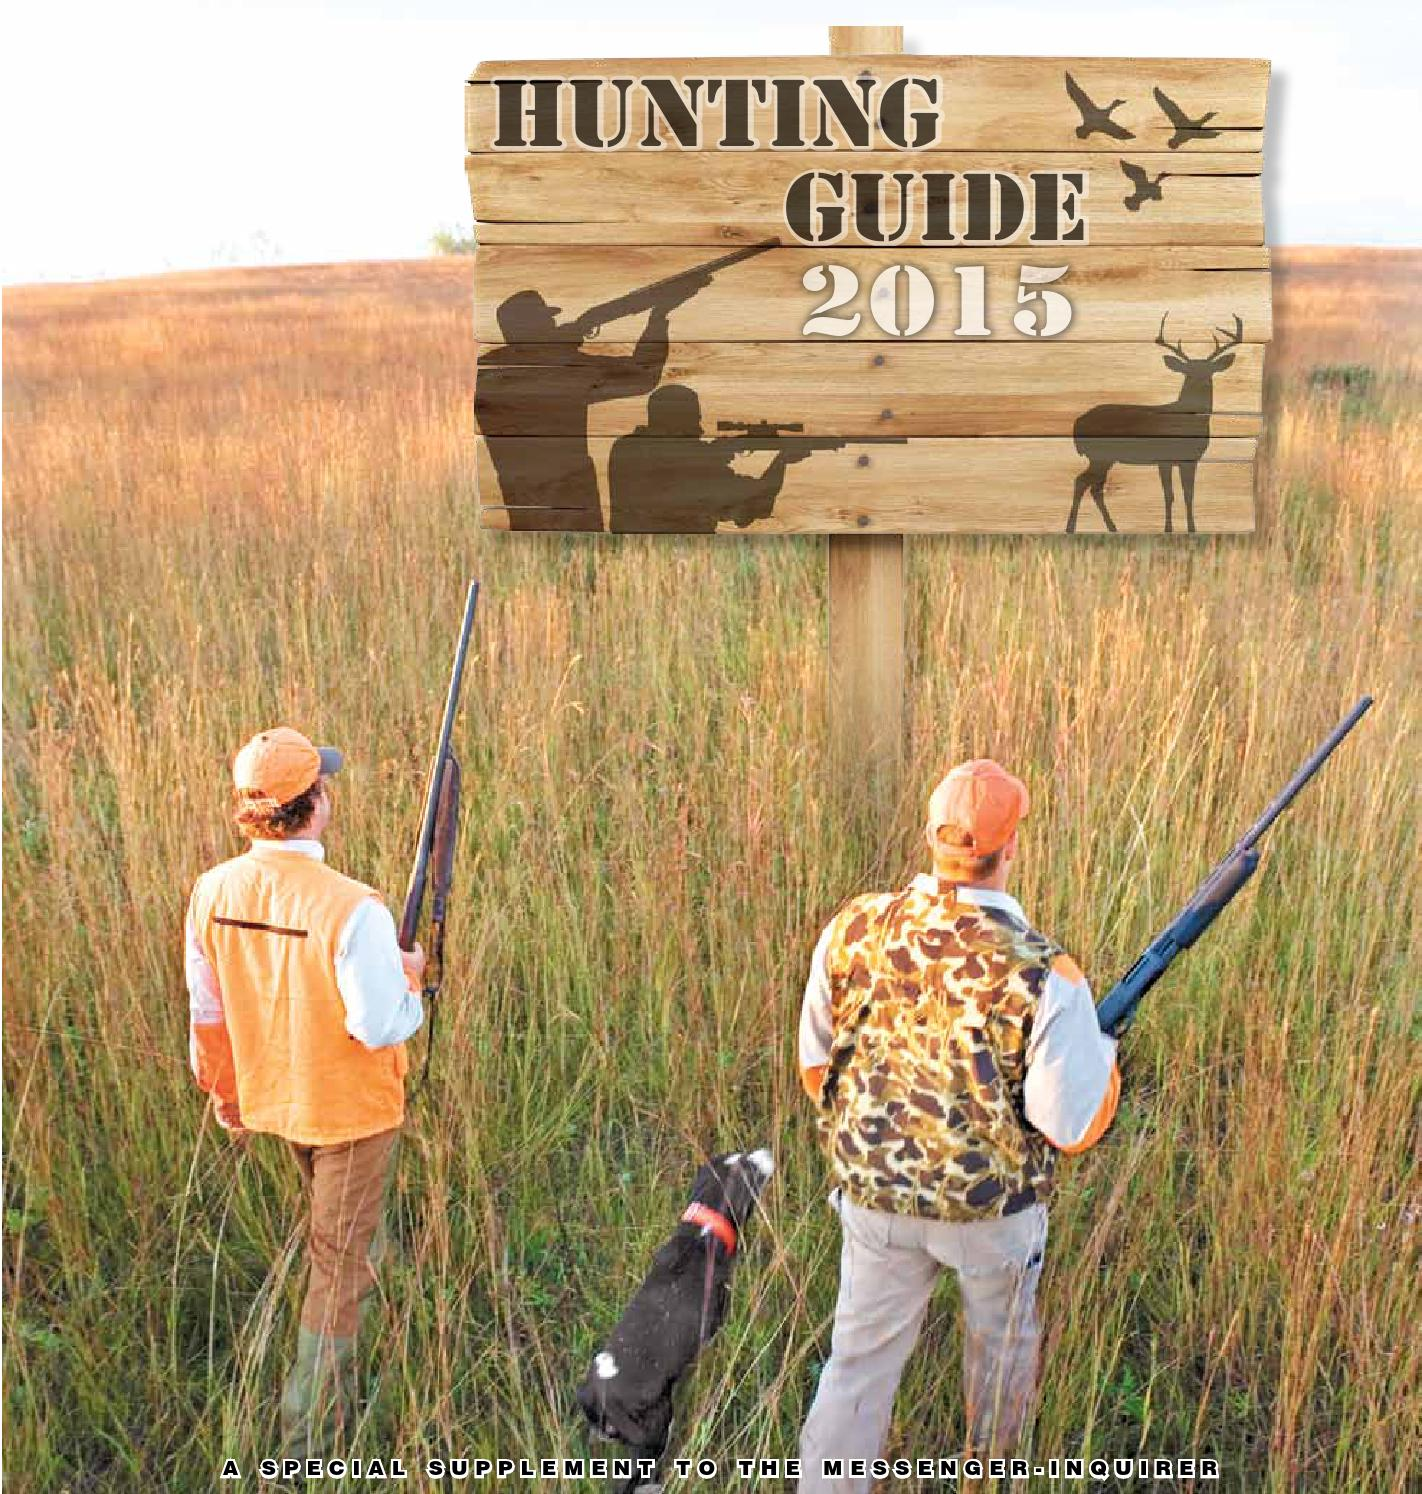 2015 hunting guide by messenger inquirer issuu for Kmart fishing license